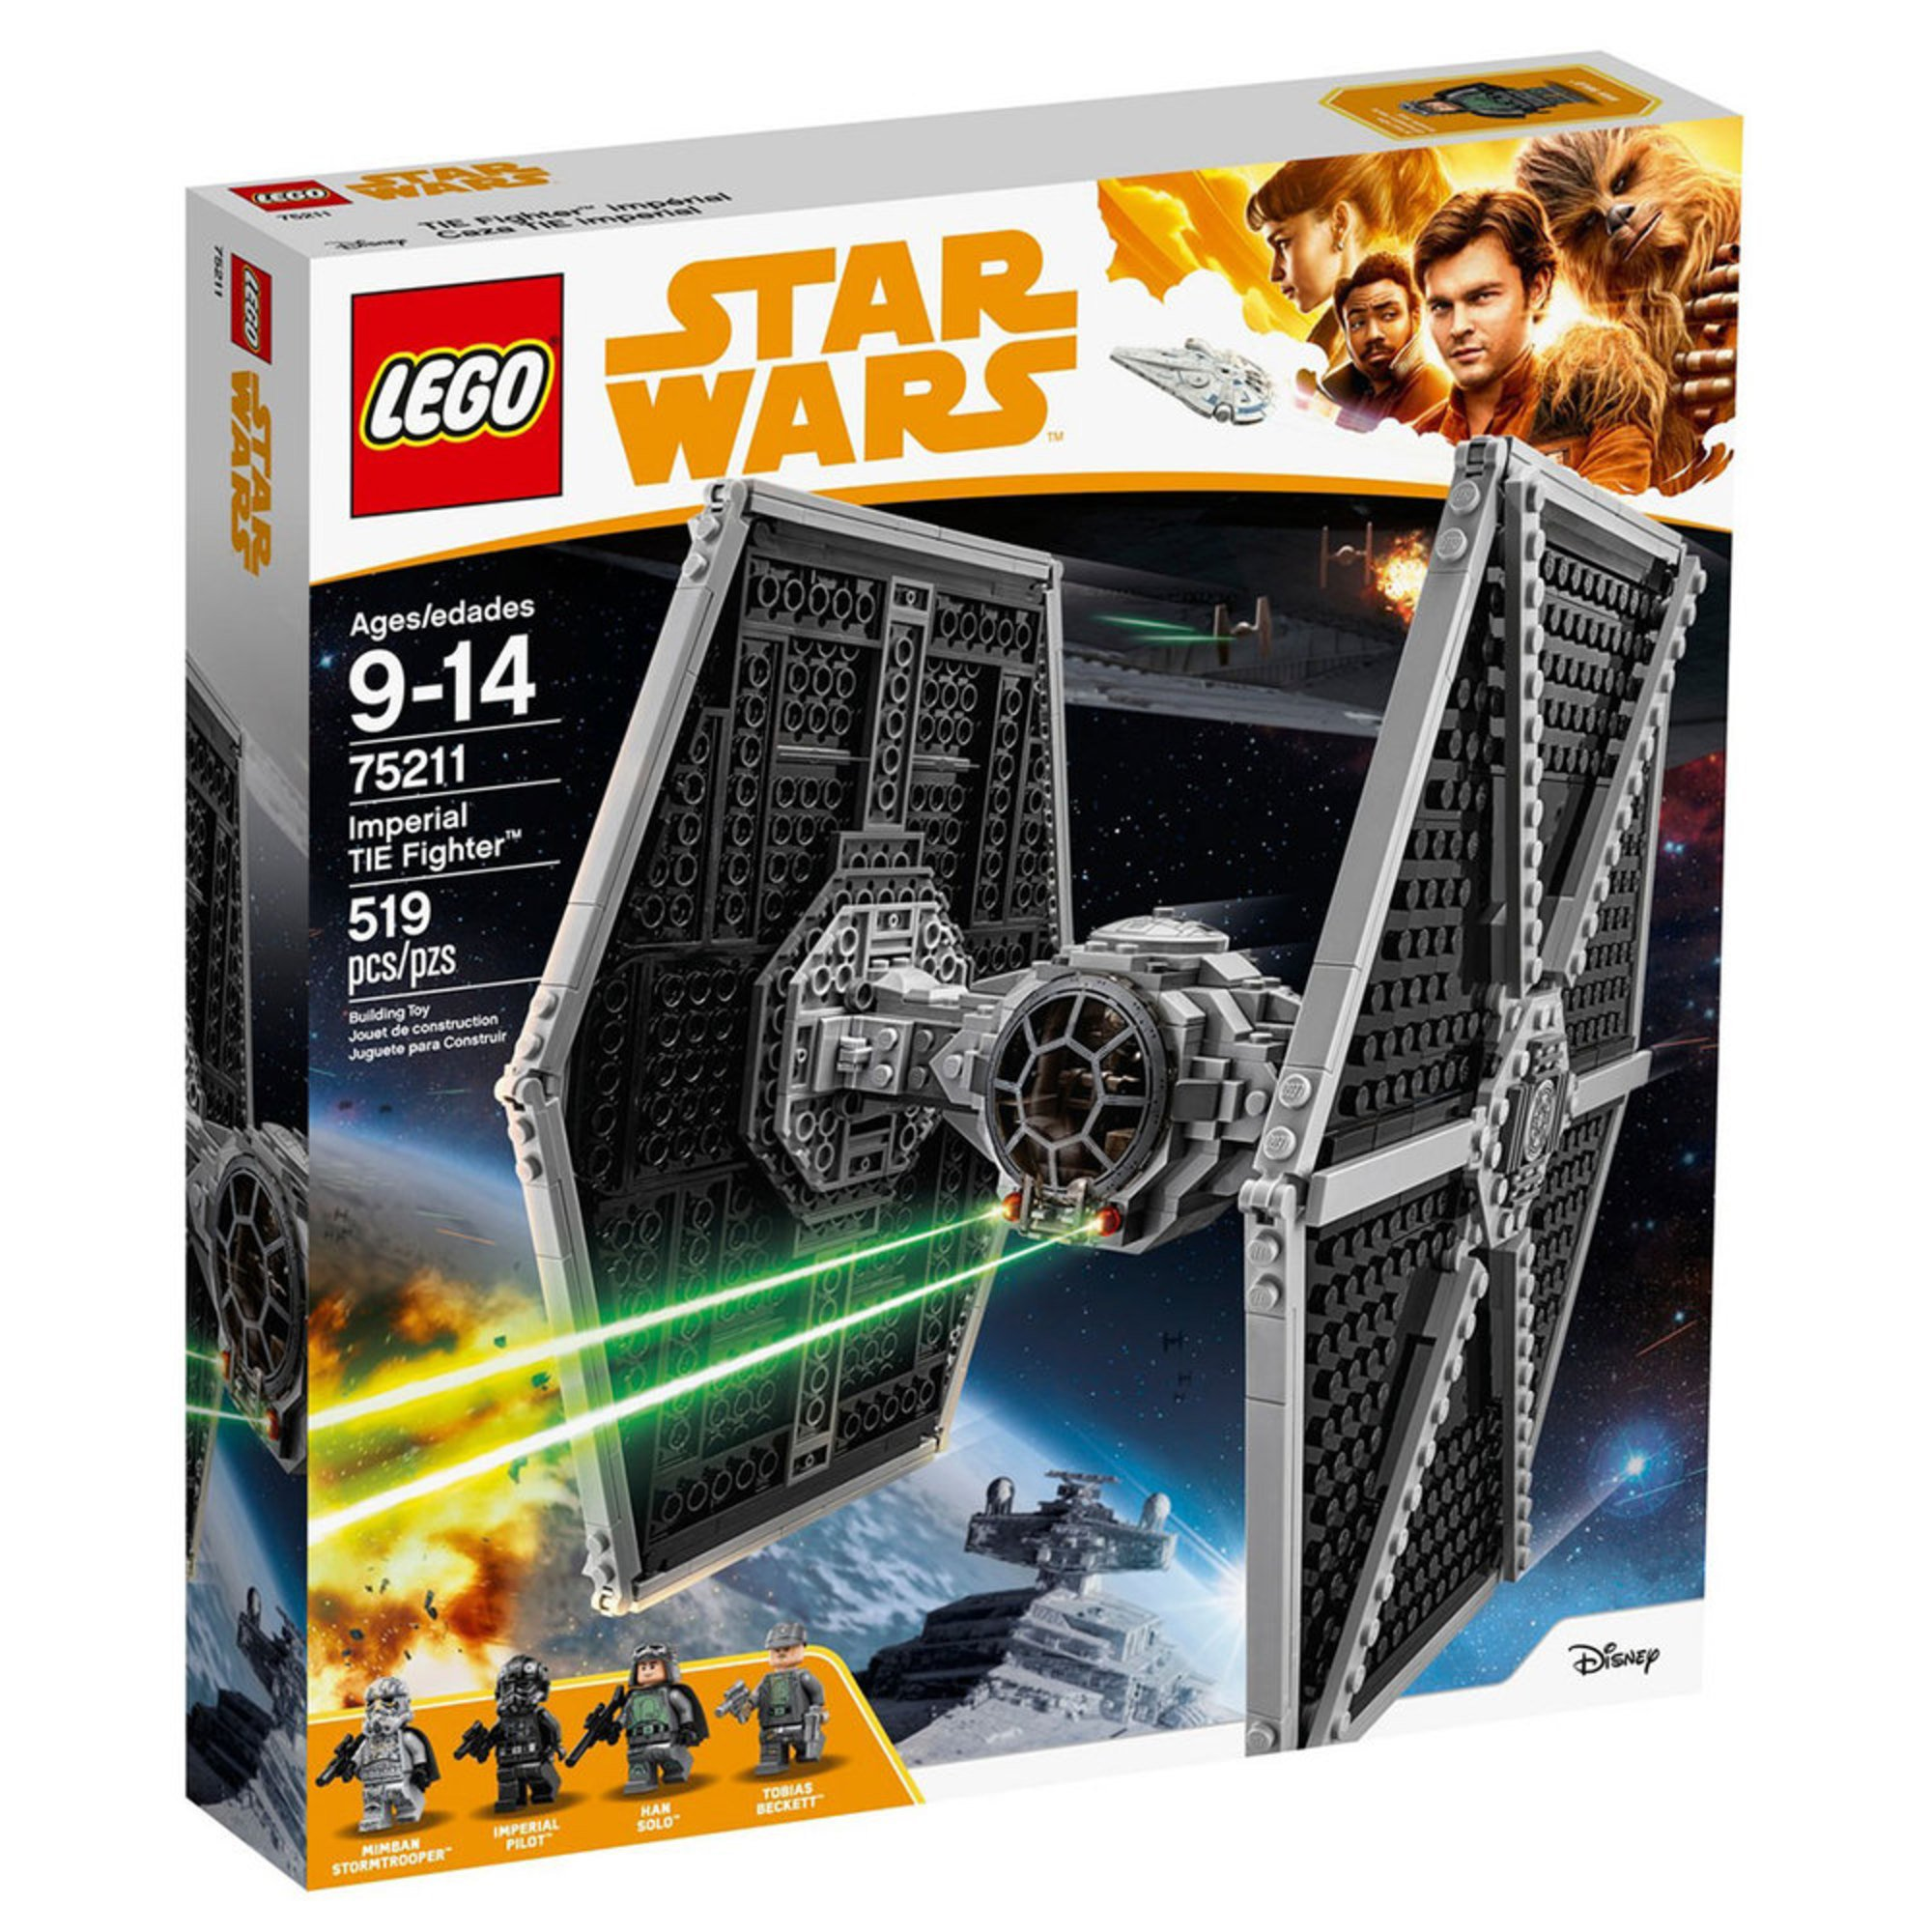 Lego Star Wars Imperial Tie Fighter 75211 Building Sets Kits